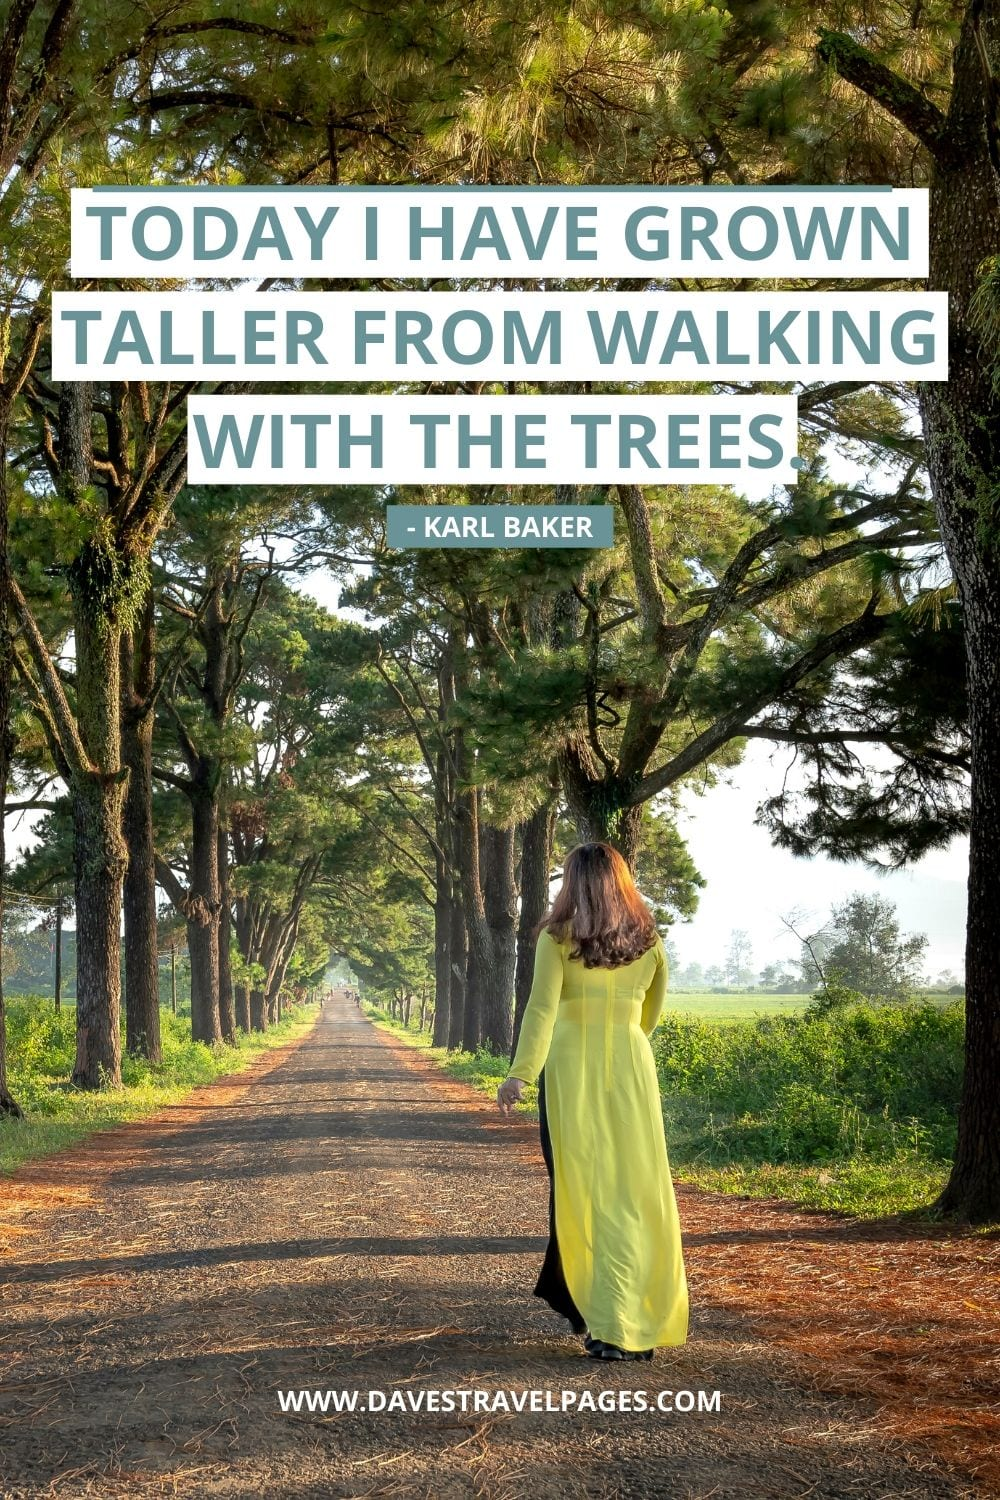 Nature Walking Quotes: Today I have grown taller from walking with the trees. - Karl Baker